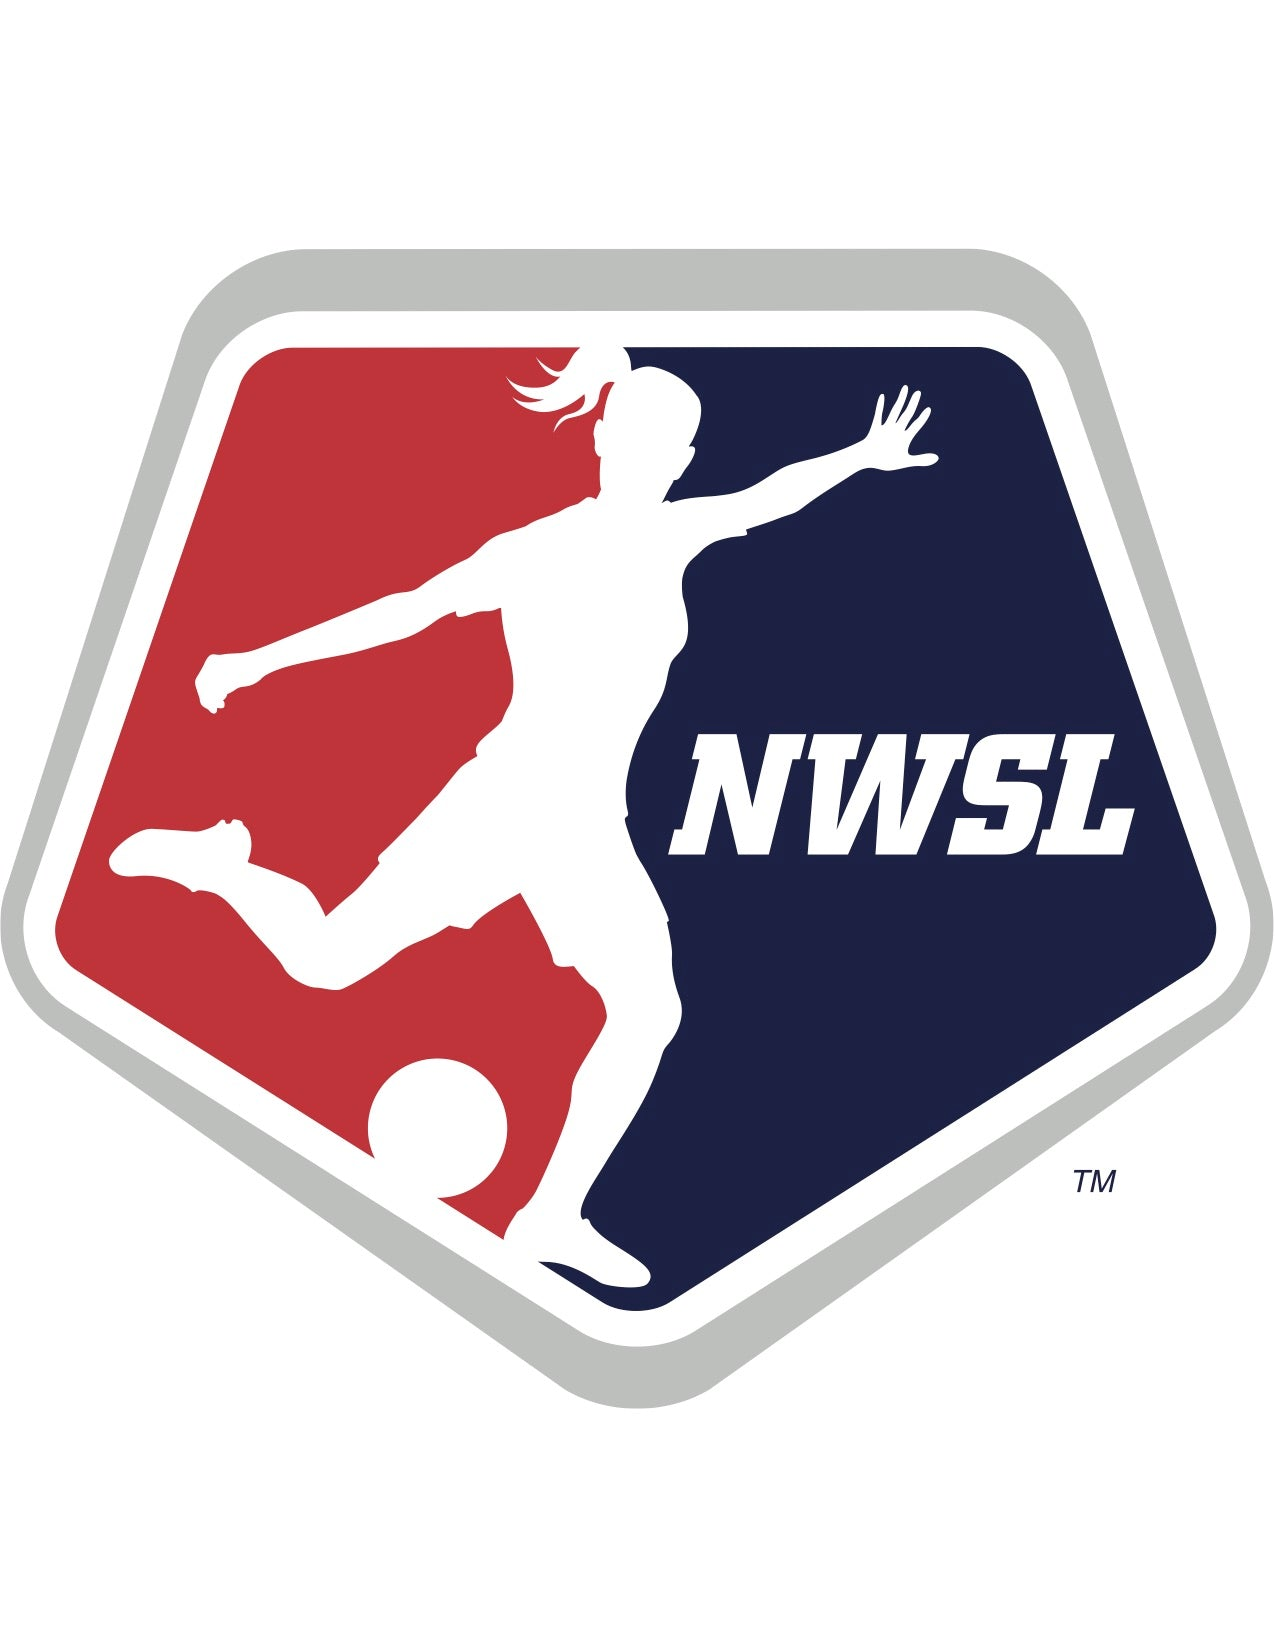 2020 NWSL CHALLENGE CUP COMMEMORATIVE SET